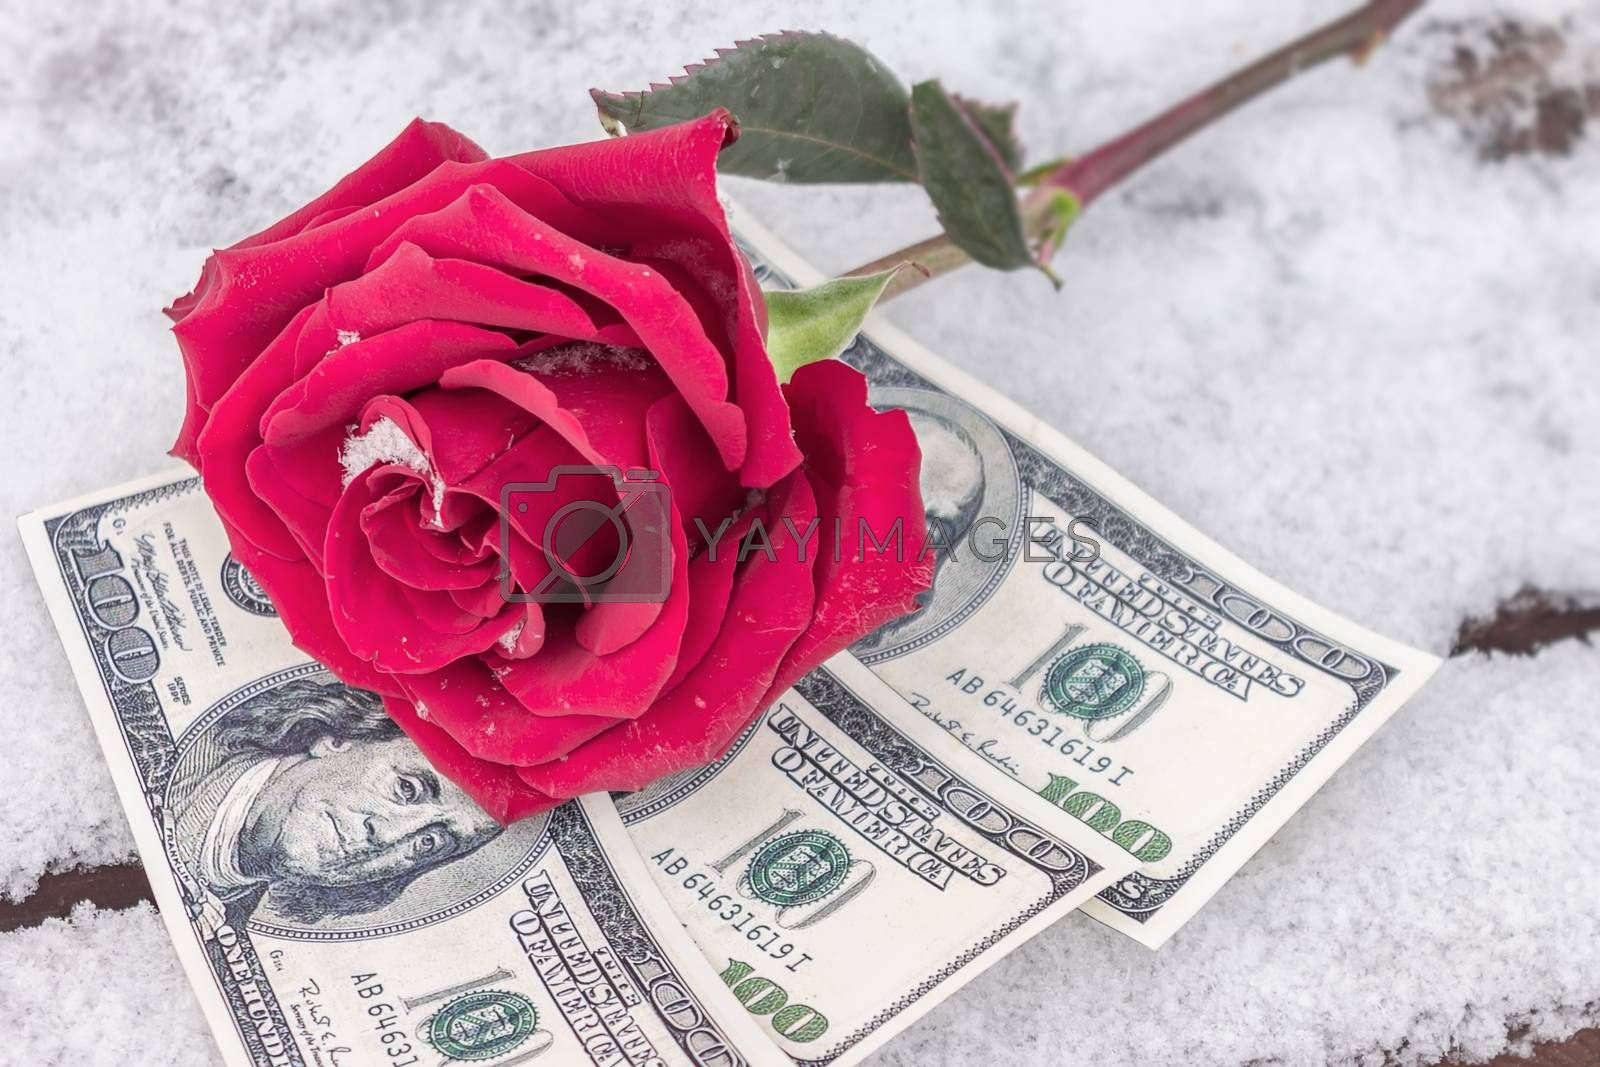 A red flower lies in the snow on top of money as a symbol of the purchase of love